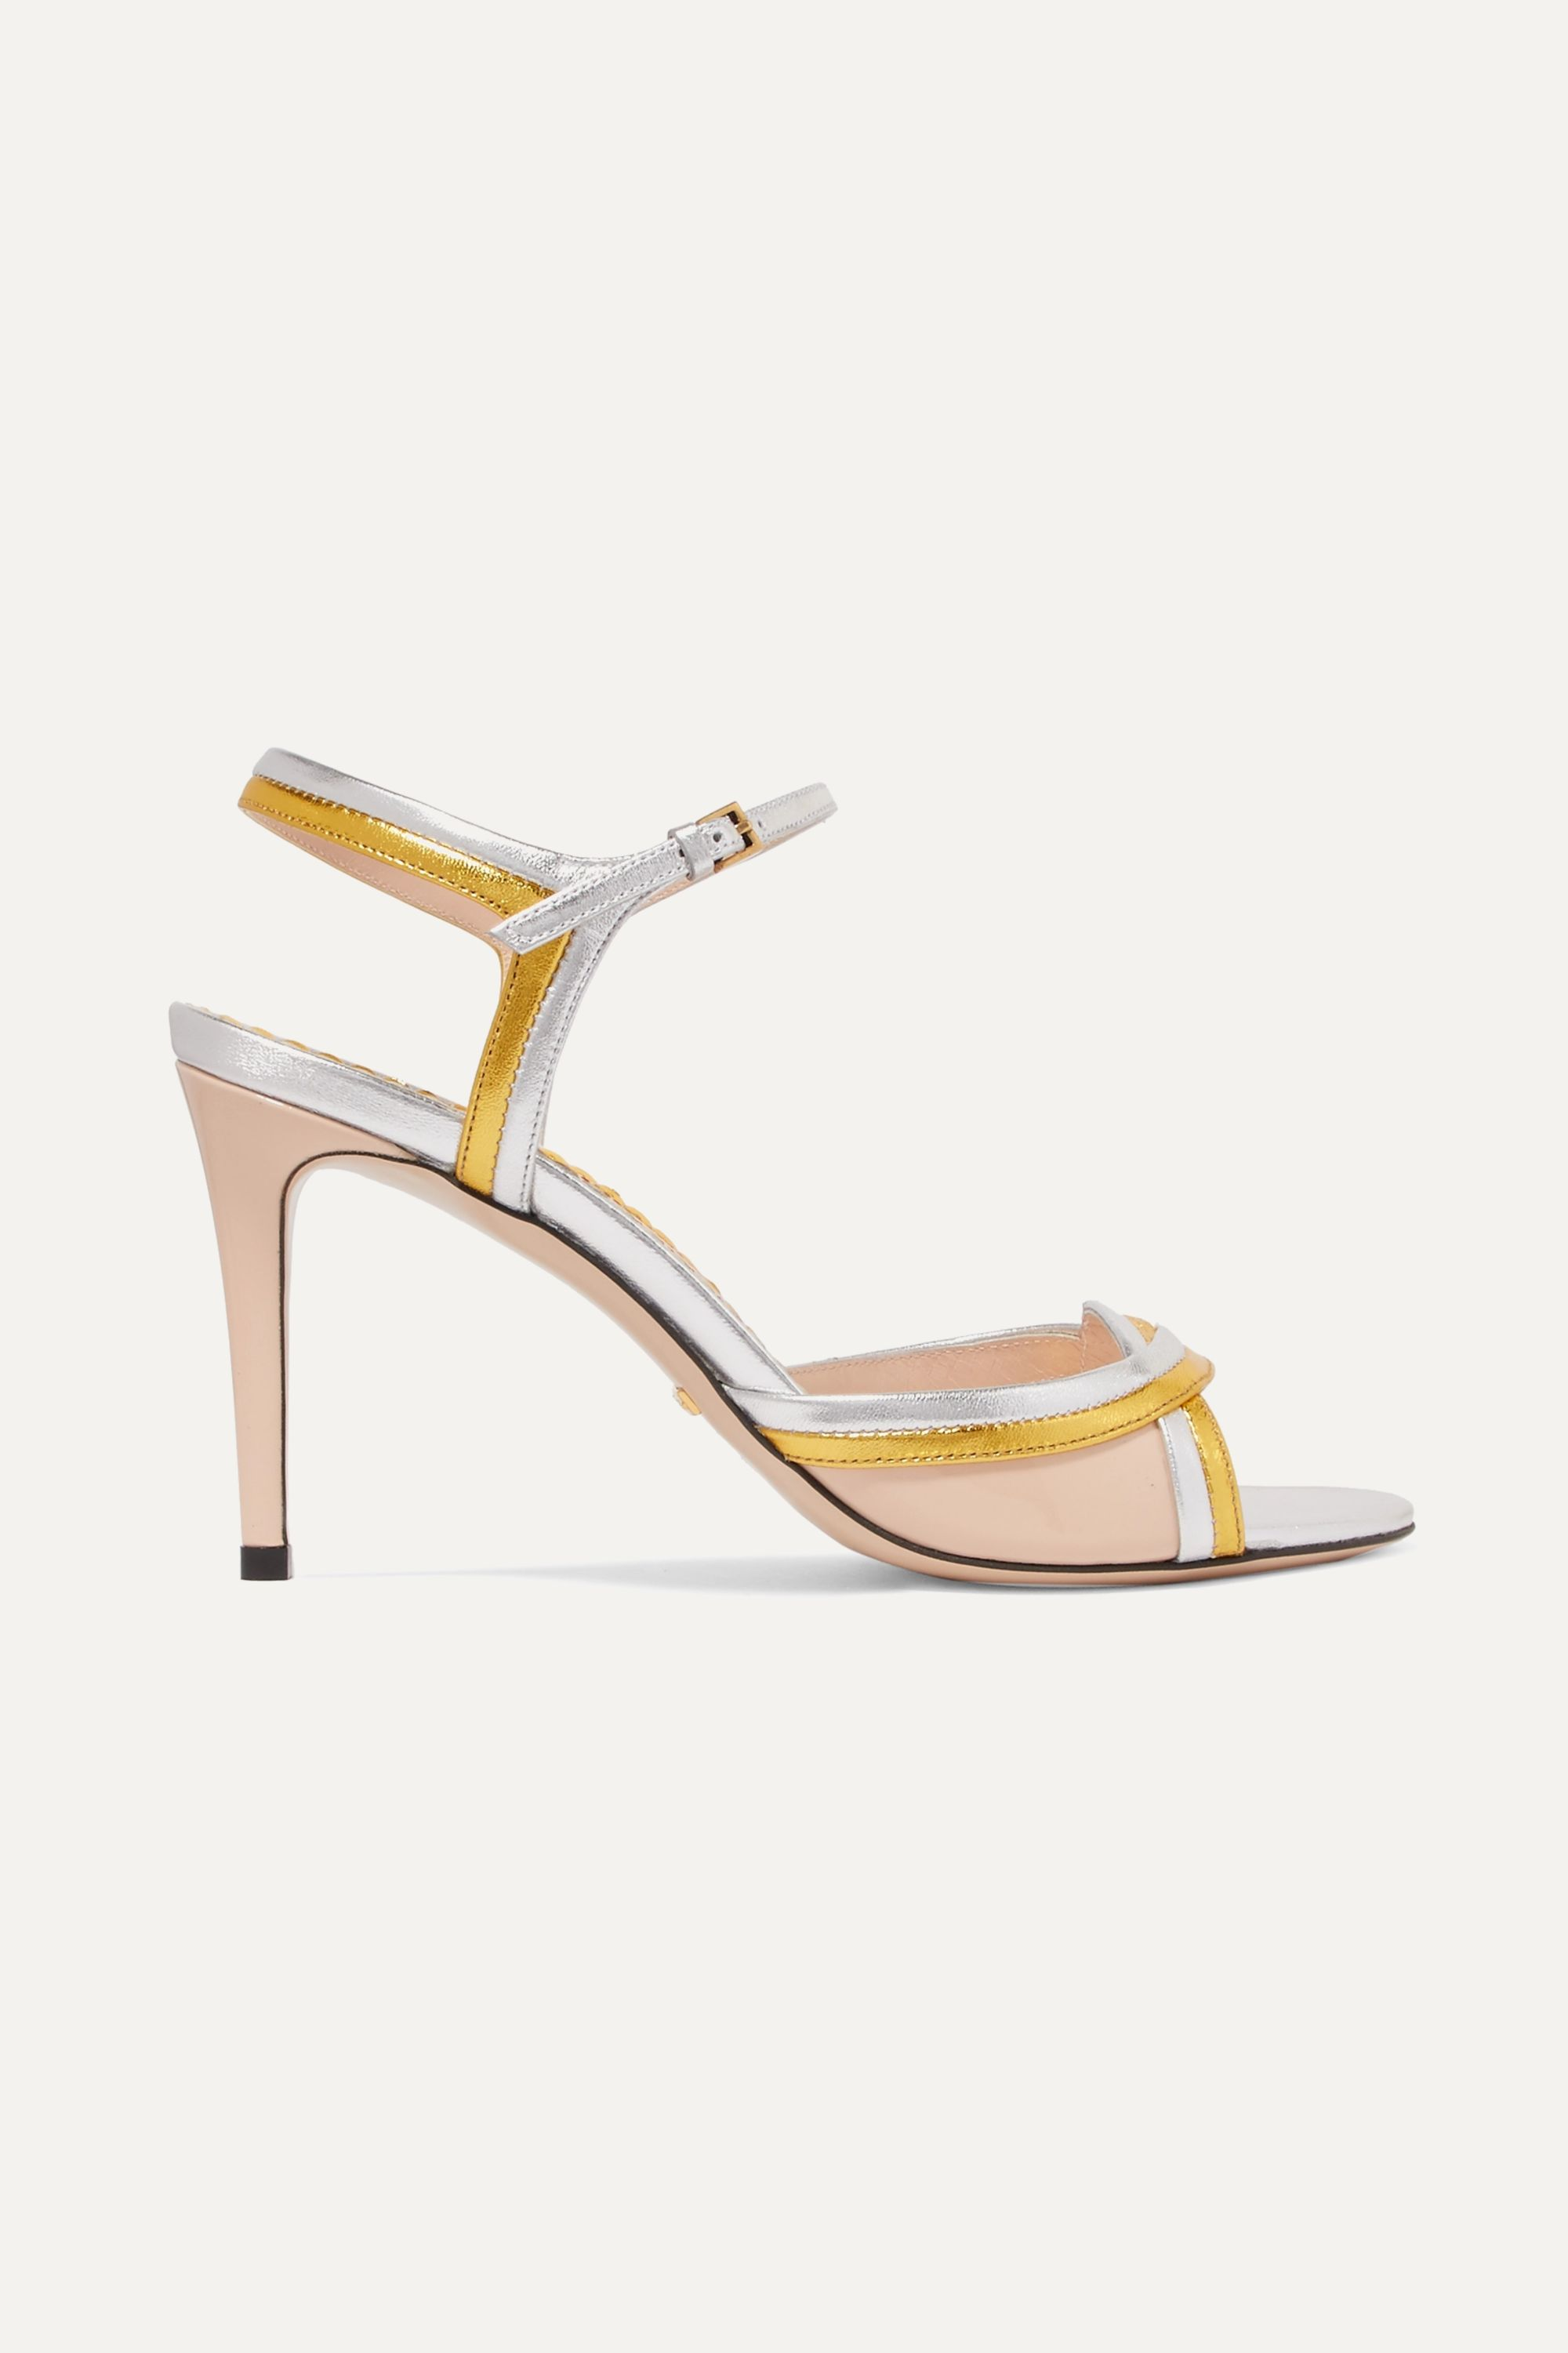 Gucci Metallic and patent-leather sandals